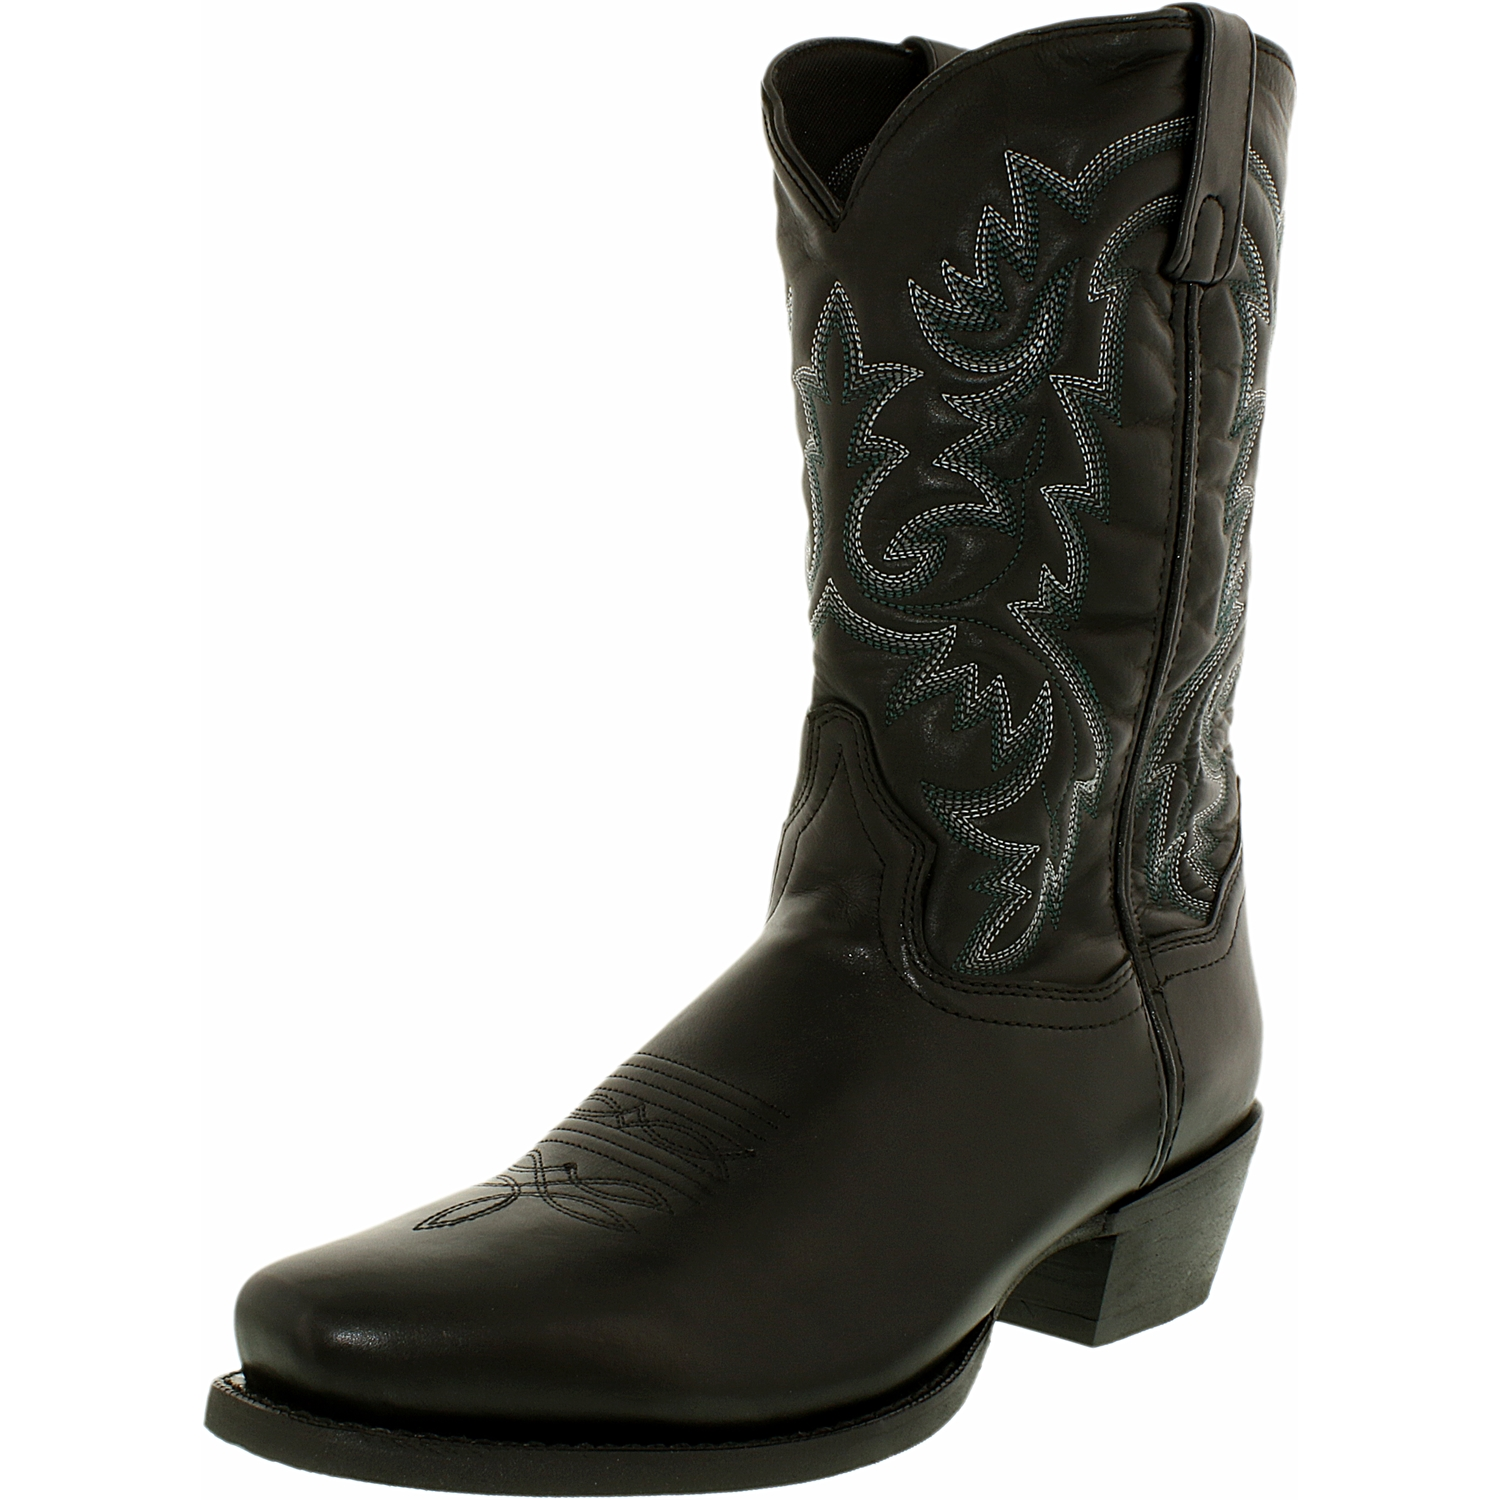 Laredo Men's Bryce Leather Mid-Calf Leather Boot by Laredo